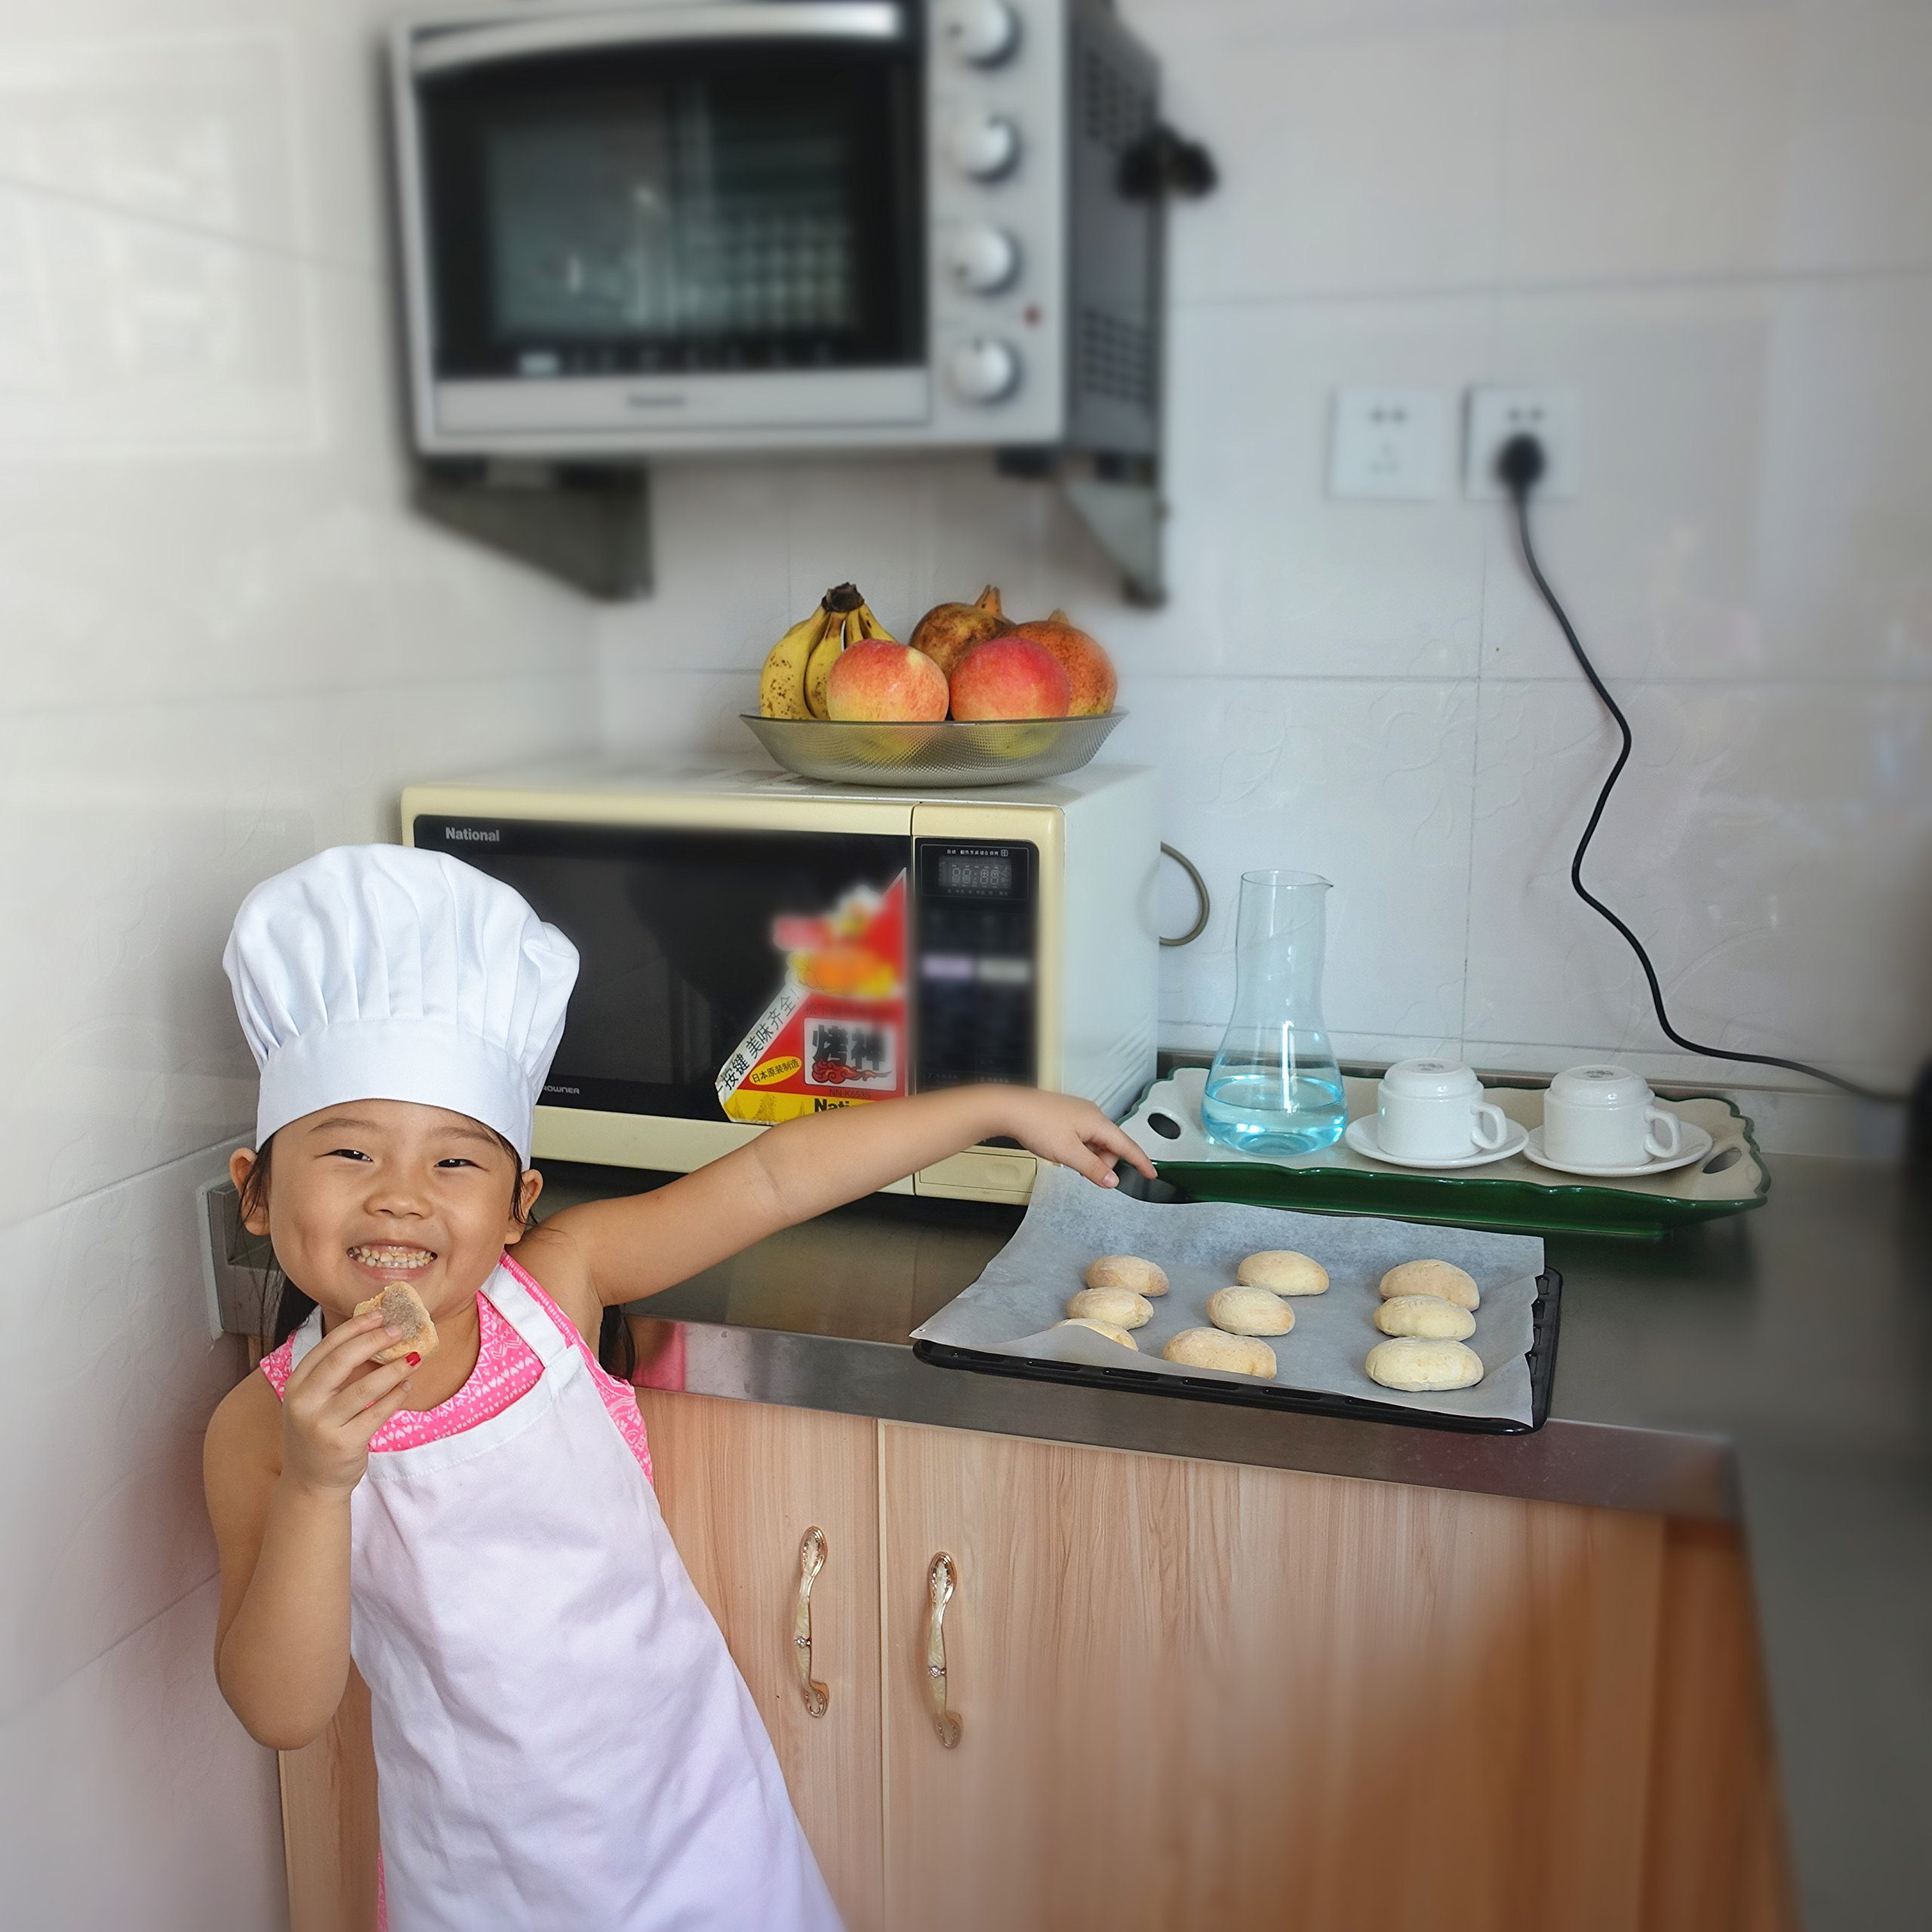 2 Pc-White kids'chef apron and hat set for cooking,baking,painting or decorating party (1-3Years) by MULAN (Image #5)